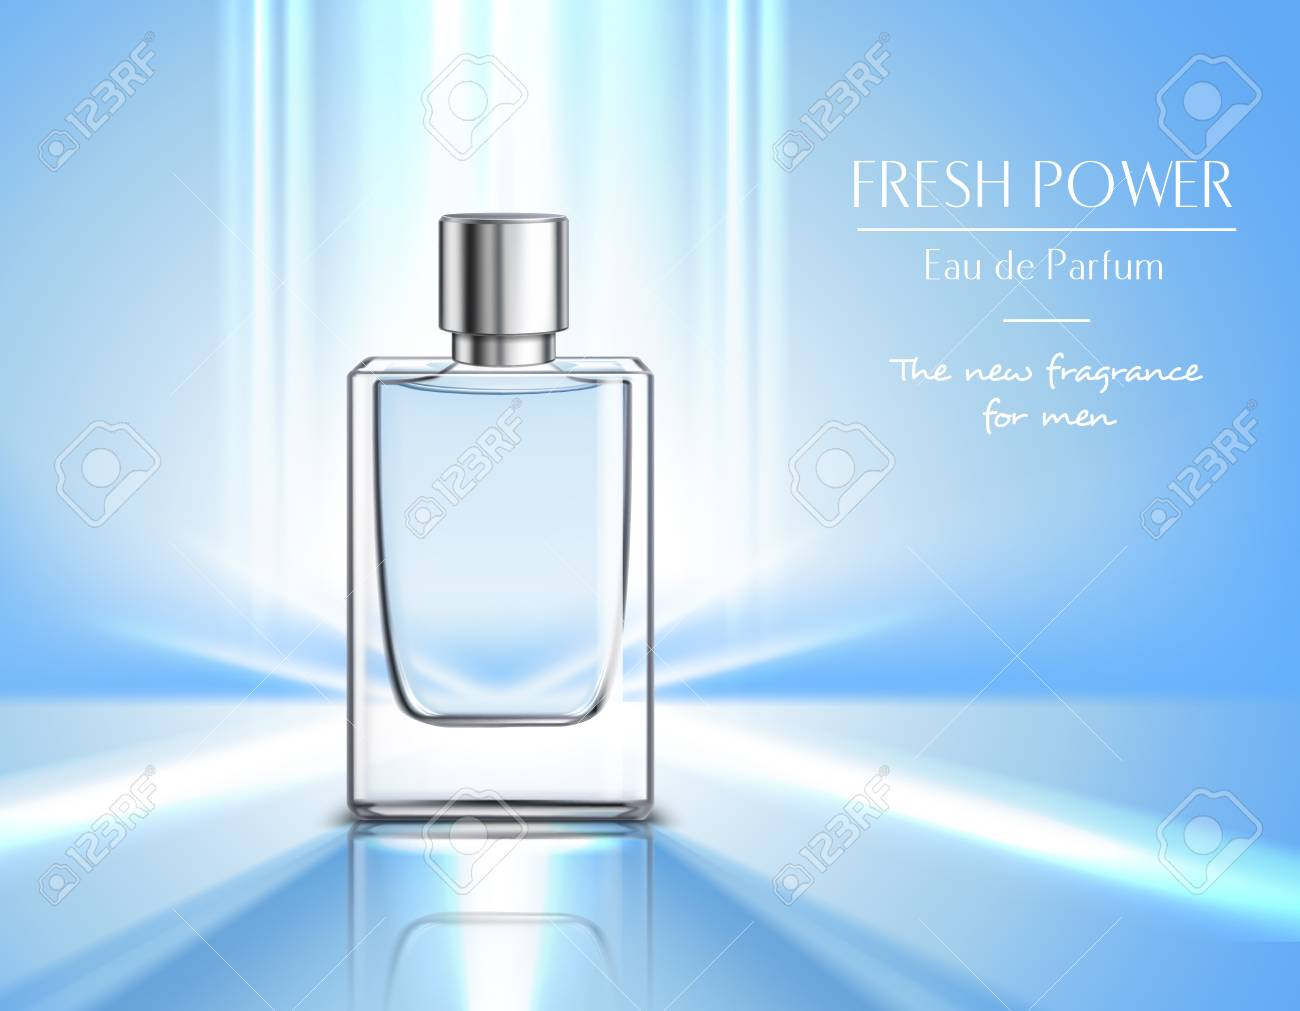 New fragrance for men perfume poster with vial of eau de parfum on blue background and fresh power headline realistic vector illustration - 101856264